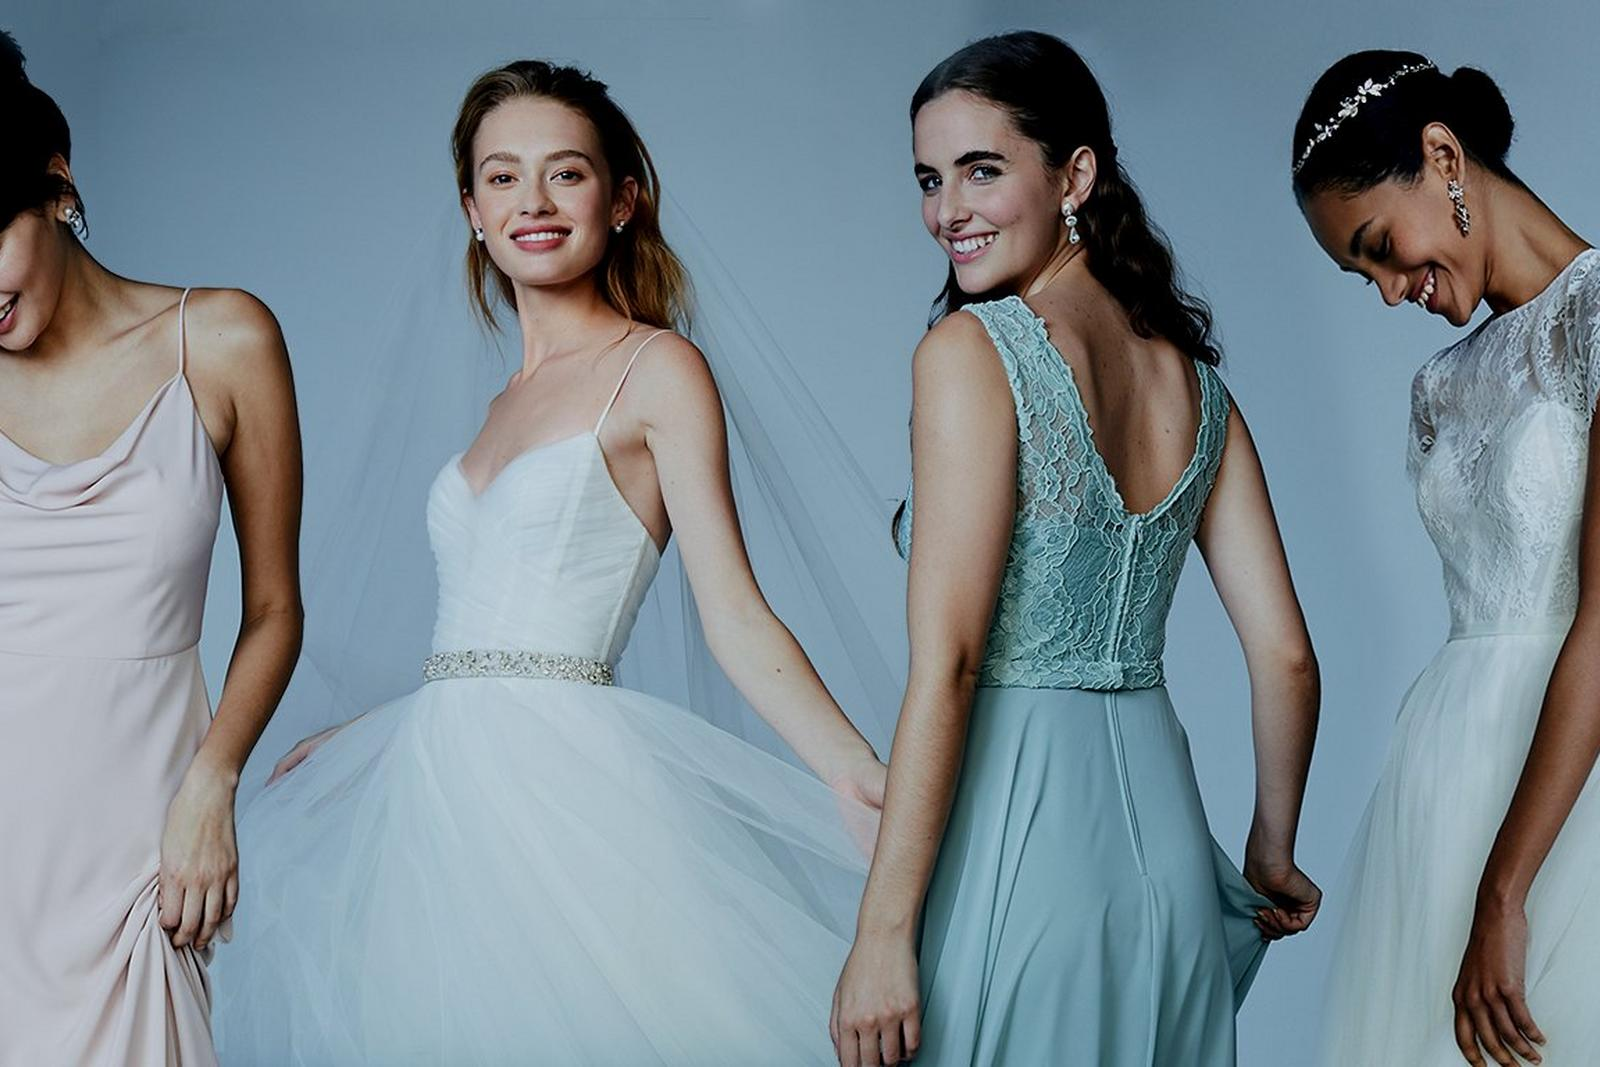 This weekend only - Take an extra 25% off Sale and $50 off all bridesmaids dresses